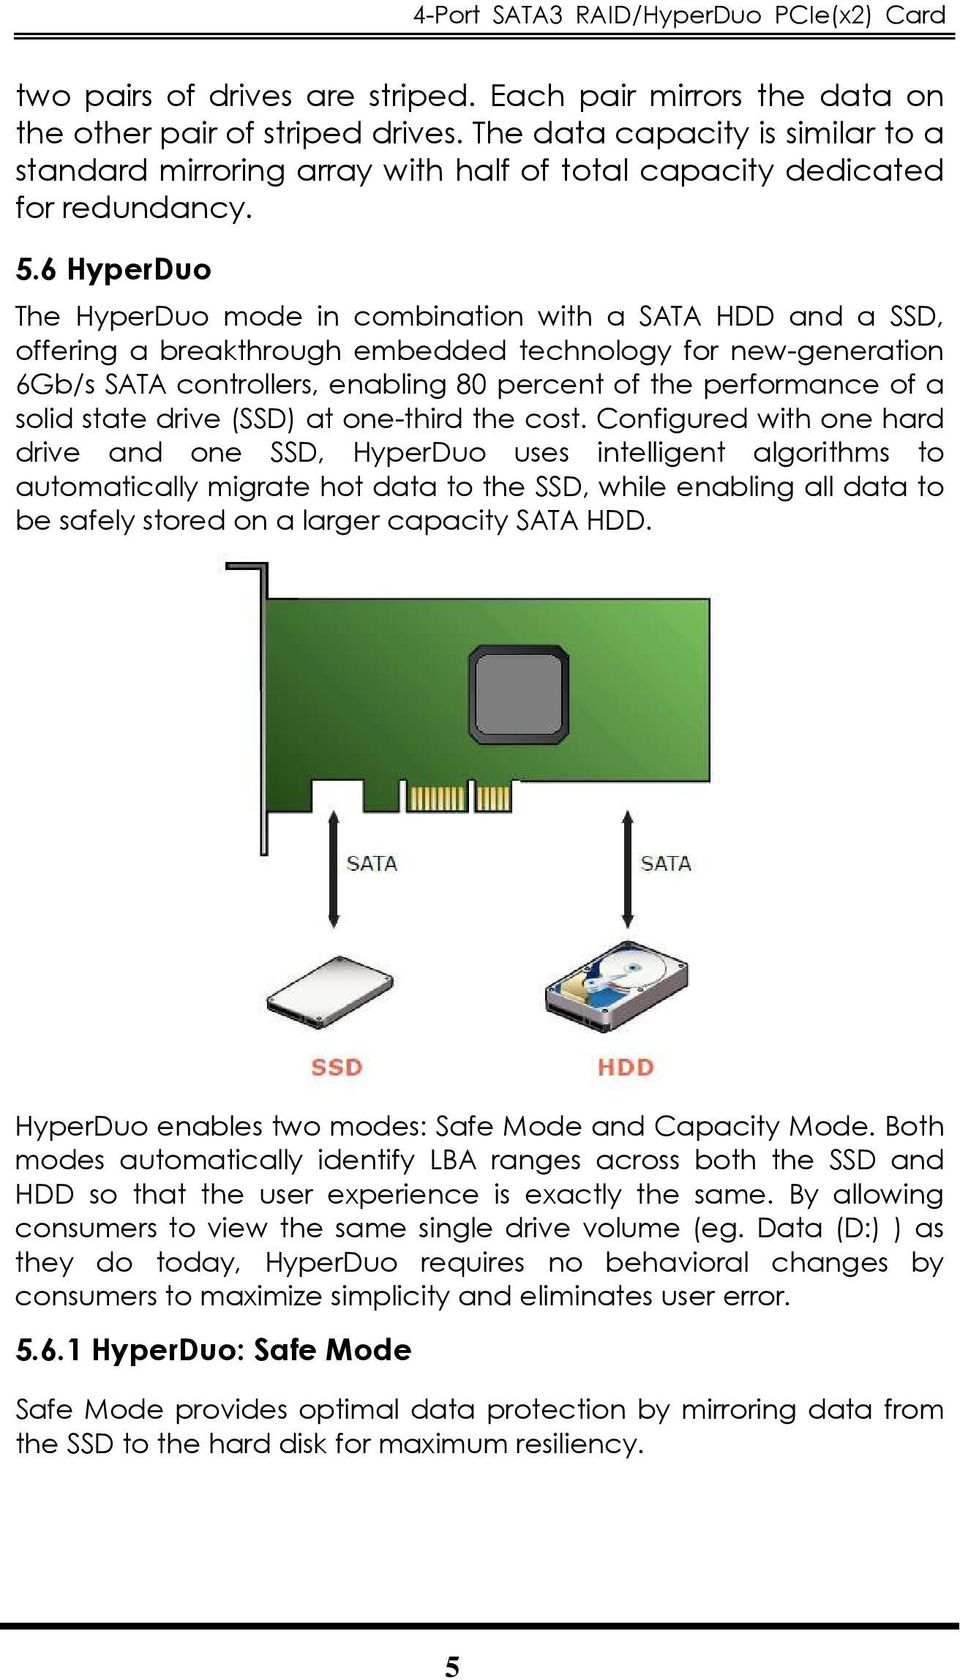 6 HyperDuo The HyperDuo mode in combination with a SATA HDD and a SSD, offering a breakthrough embedded technology for new-generation 6Gb/s SATA controllers, enabling 80 percent of the performance of